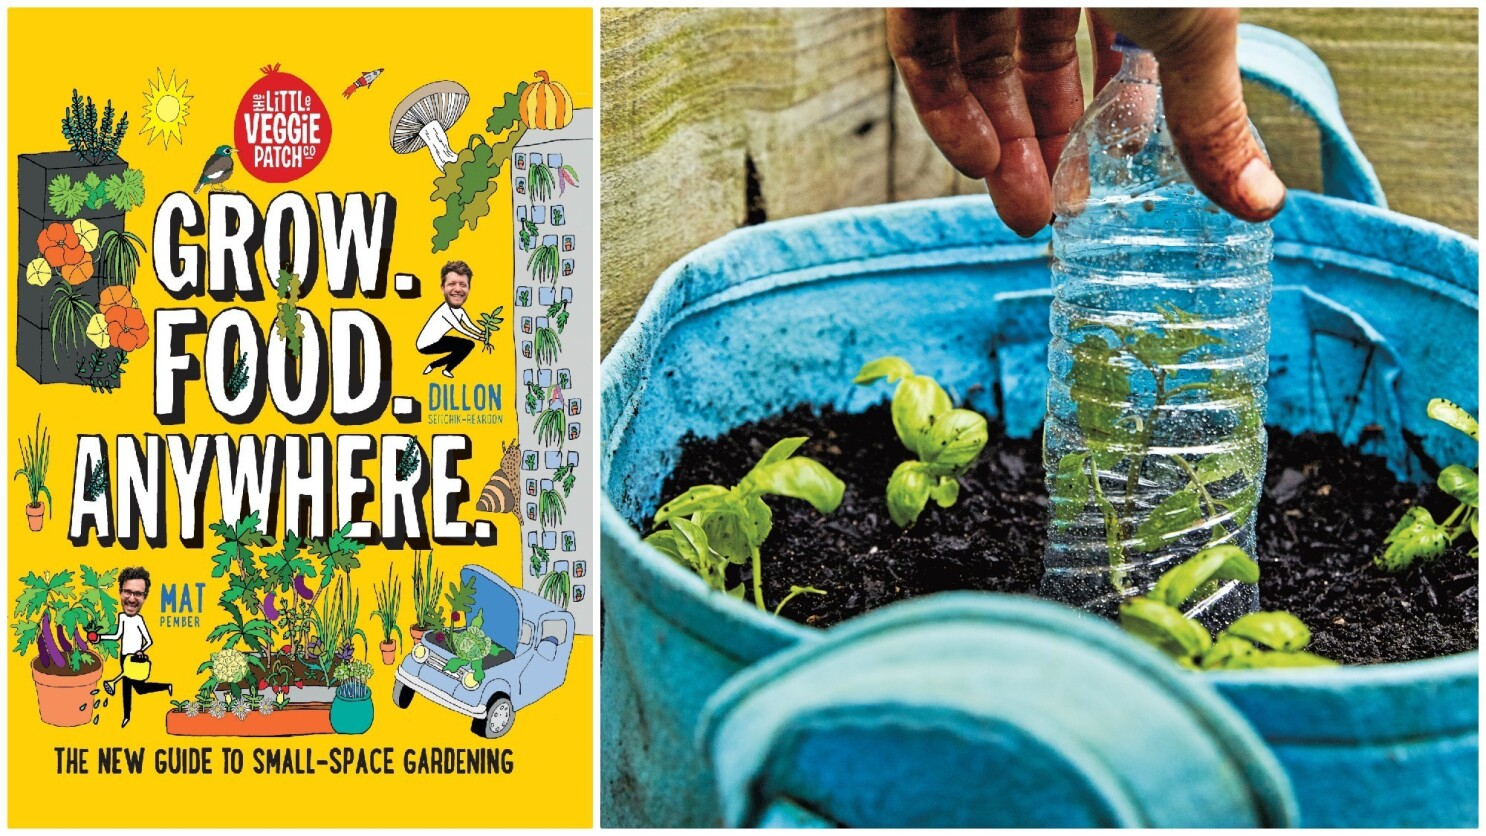 This Book Shows You How To Grow Food Anywhere Los Angeles Times,Home Office Furniture Arrangement Ideas